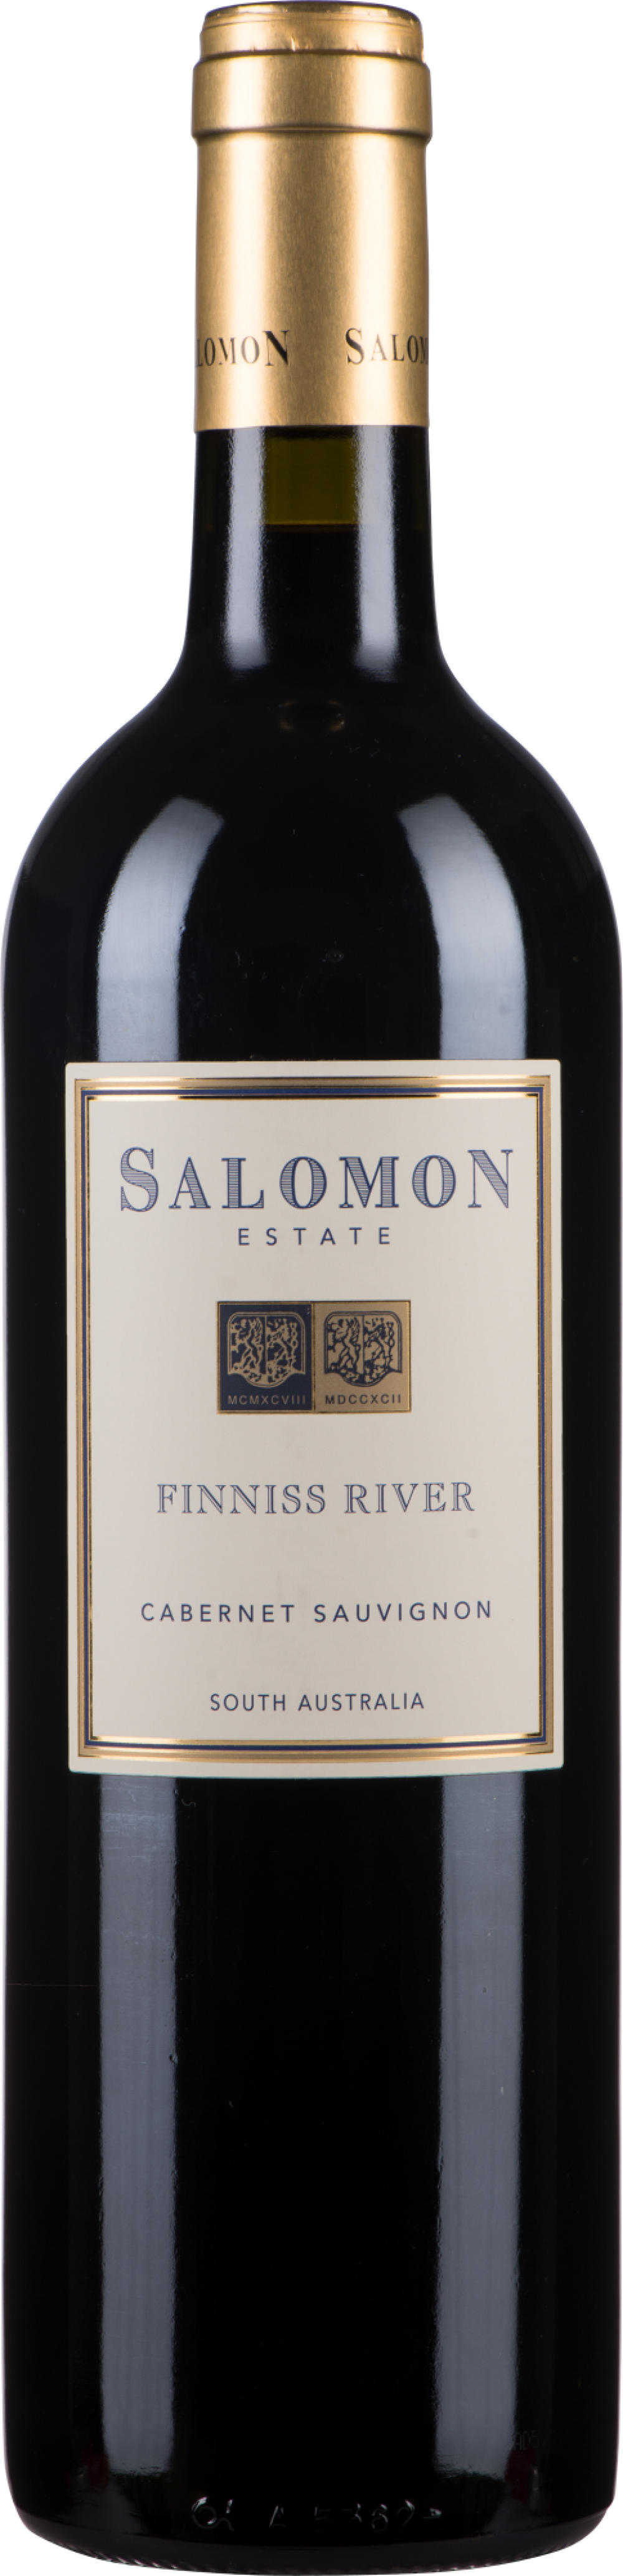 files/images/wines/Australia/salomon-estate-south-australia/Finniss River Cabernet.png